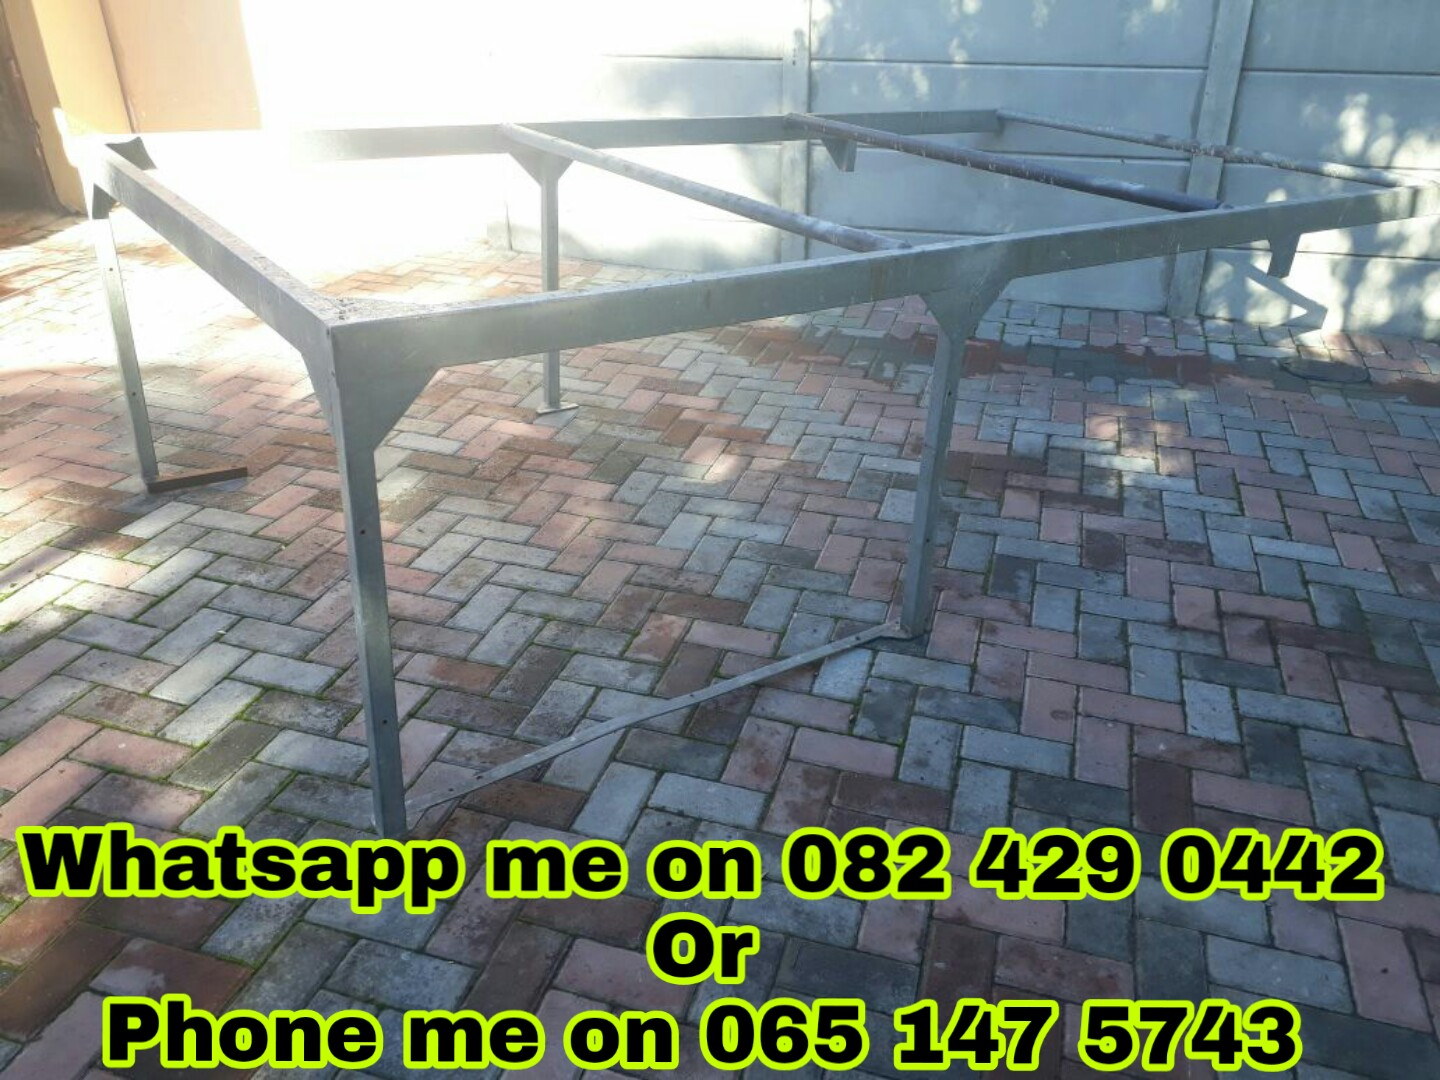 Galvanised steelframe for a bakkie (3.1 x 1.6) @R3000 negotiable